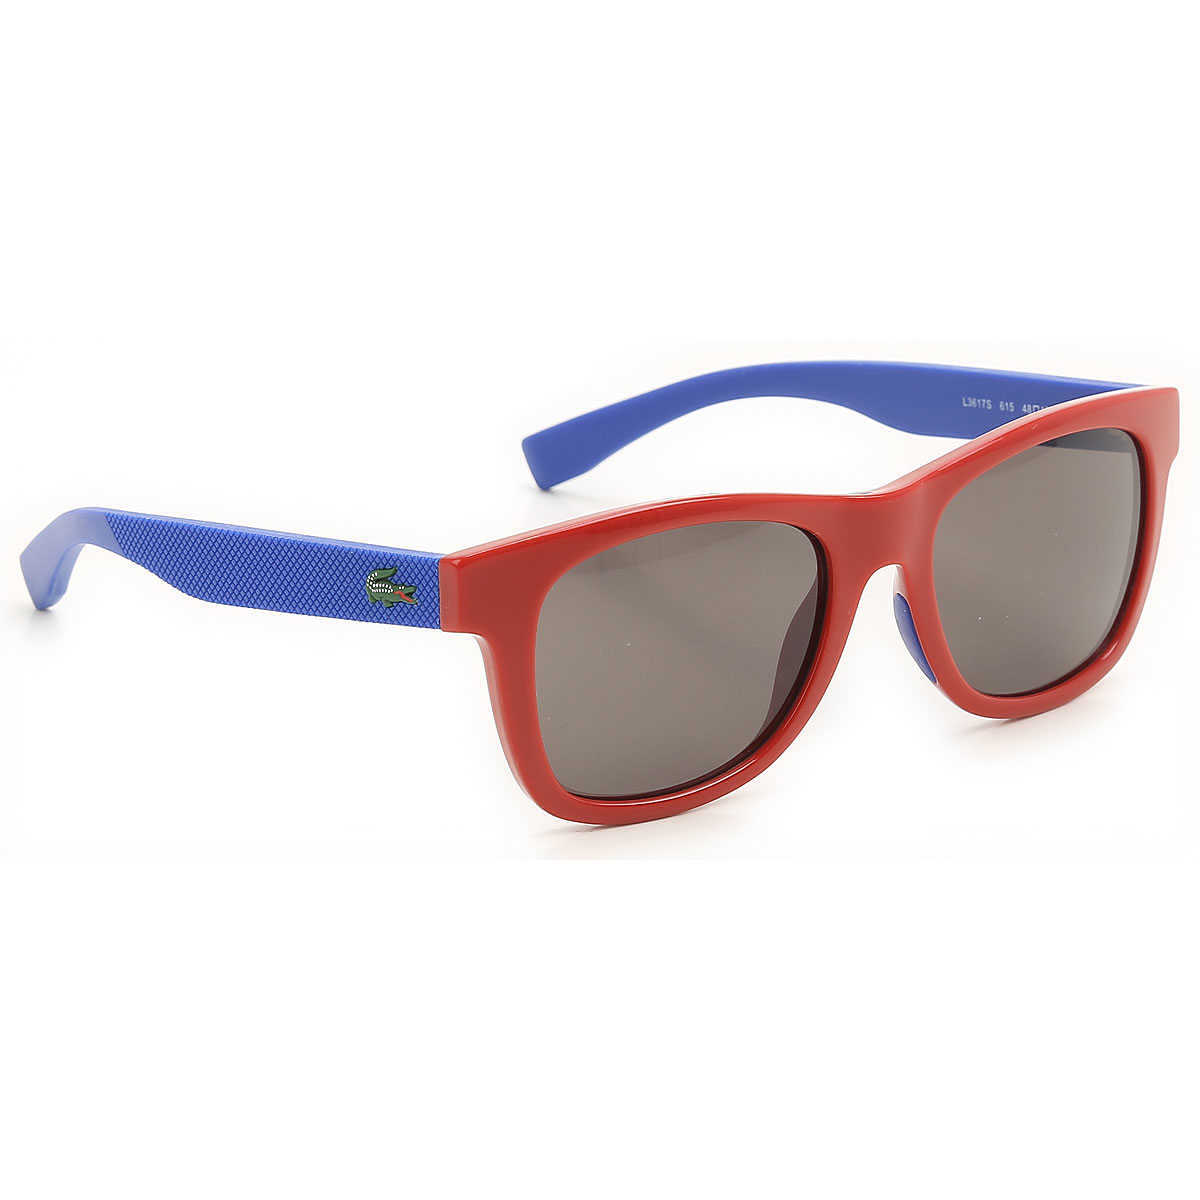 Lacoste Kids Sunglasses for Boys On Sale Red DK - GOOFASH - Mens SUNGLASSES